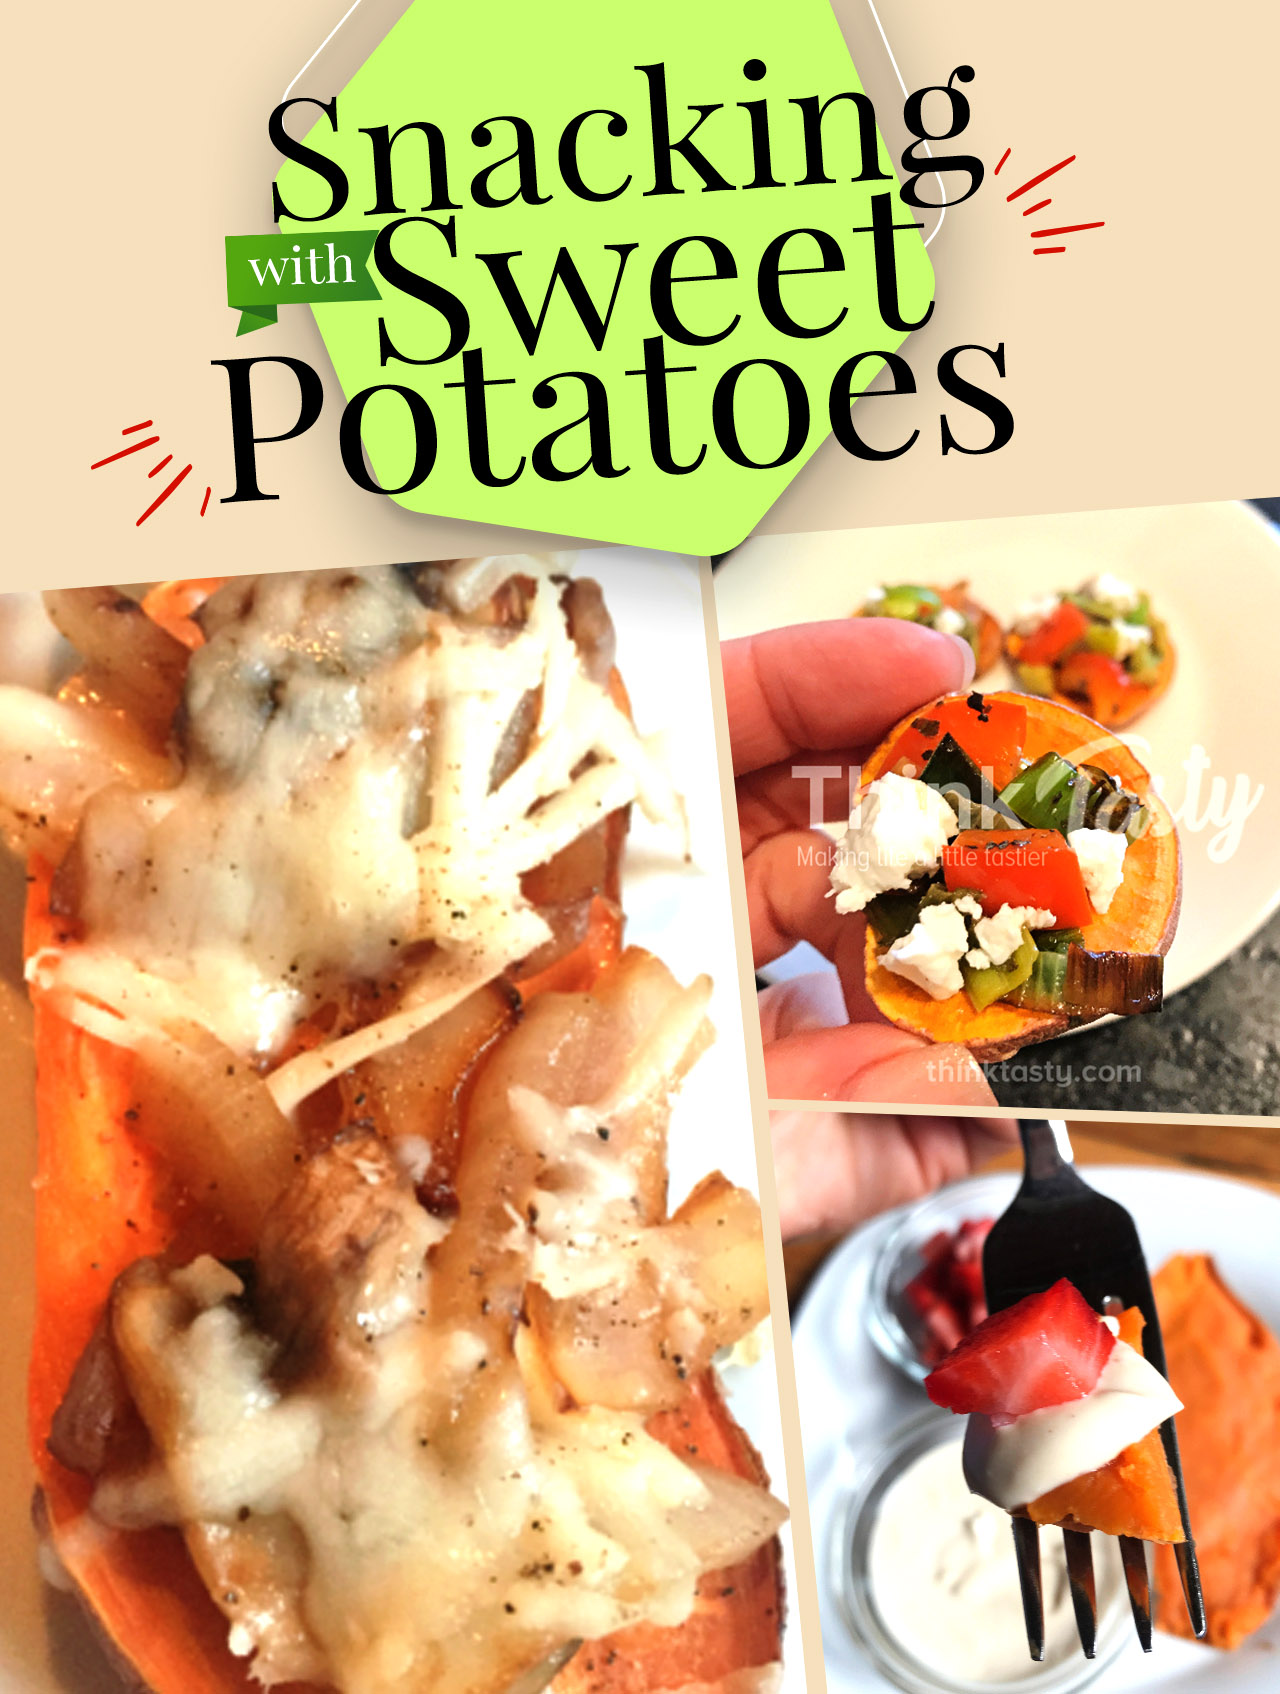 appetizers made with sweet potatoes